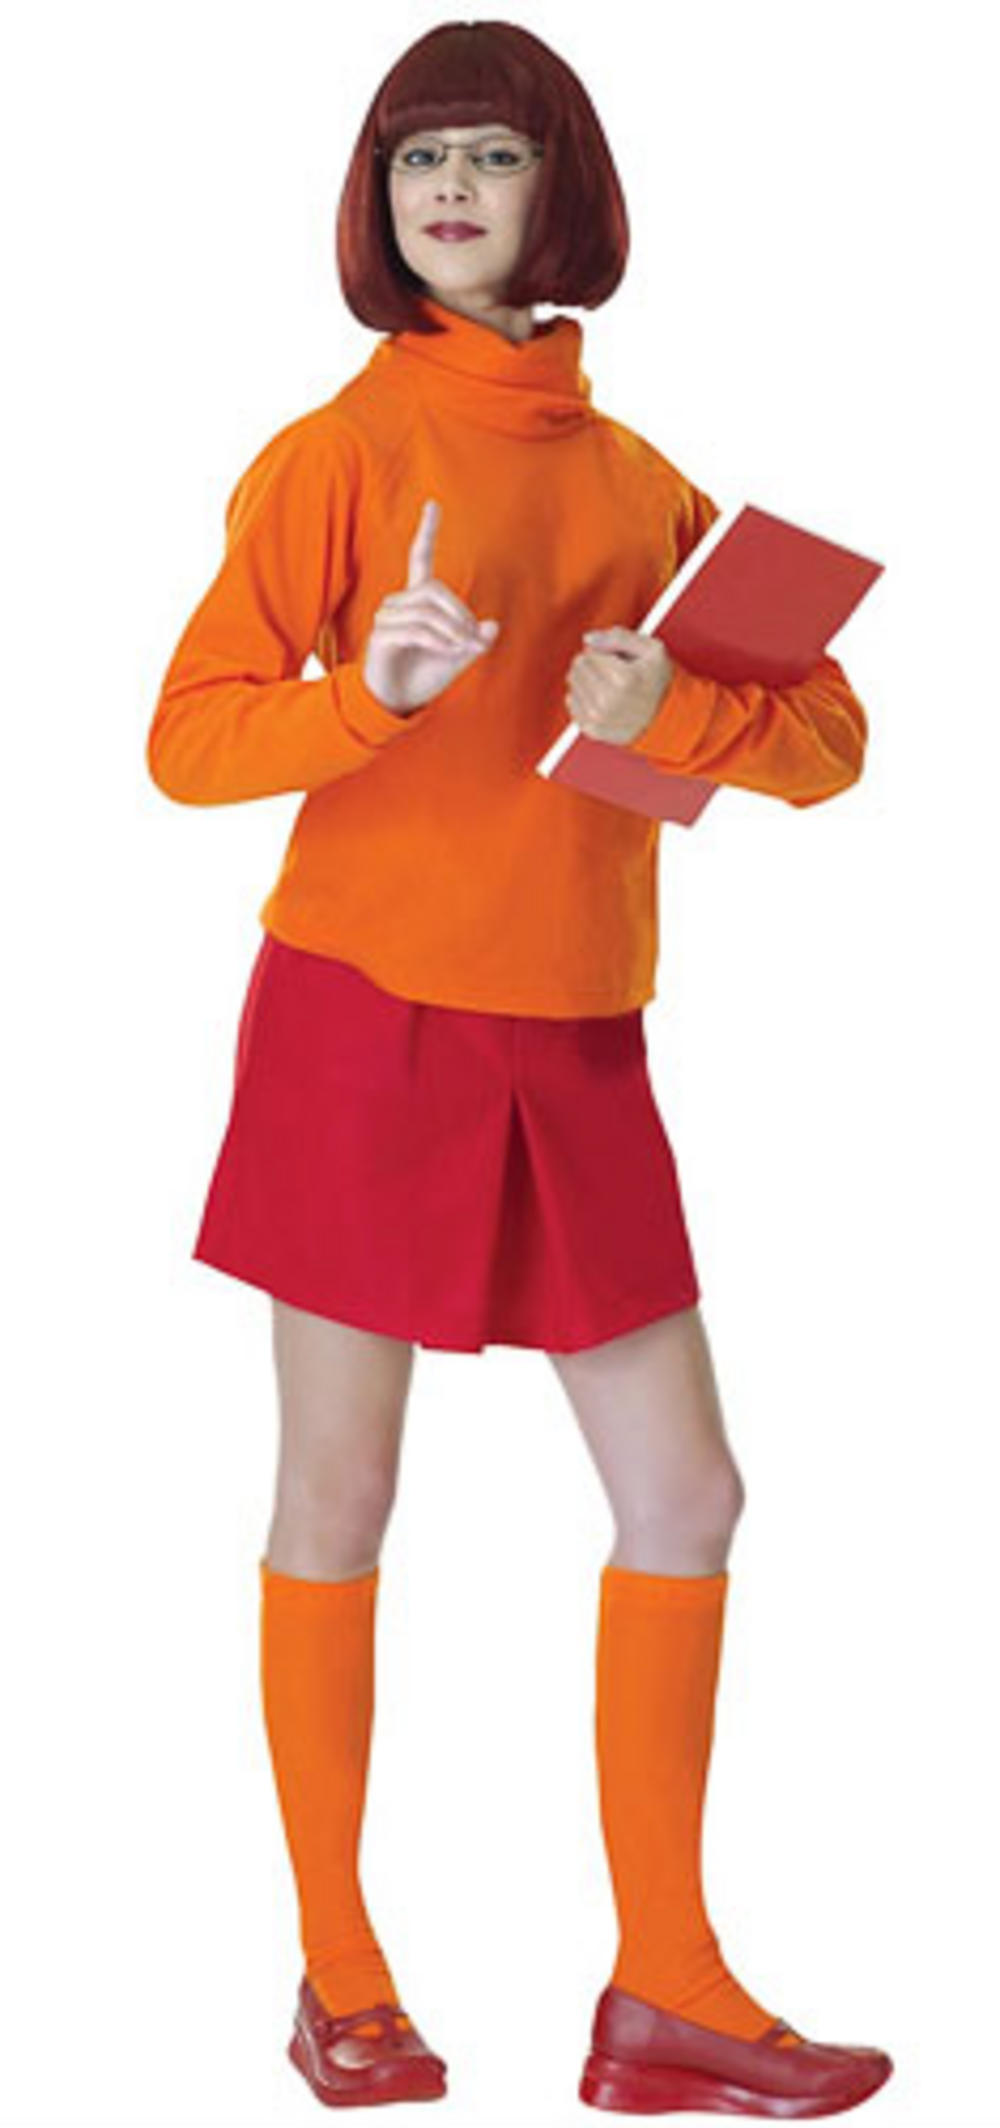 Adult scooby doo costumes